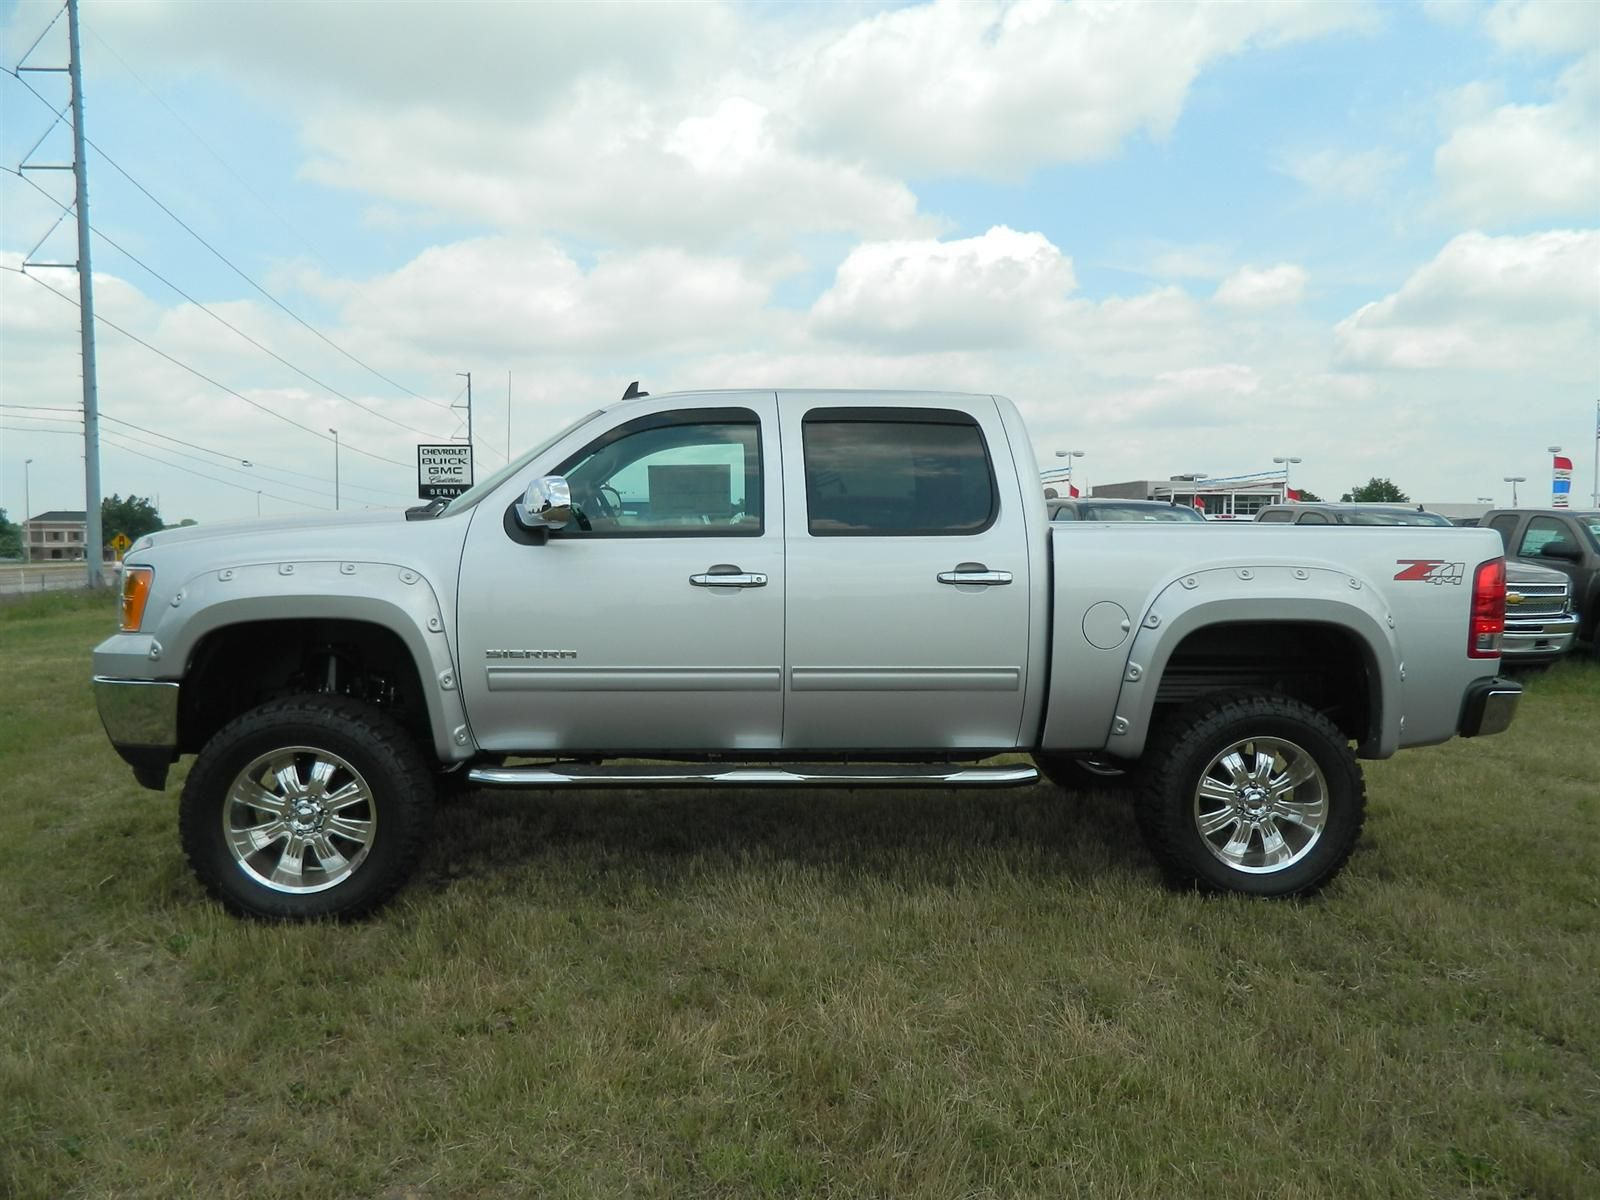 New 2012 Gmc Sierra 1500 Rocky Ridge Conversion For Sale In Jackson Tn Vin 3gtp2ve79cg225691 Serving Henderson Humboldt Gmc Sierra Gmc Trucks Sierra Gmc